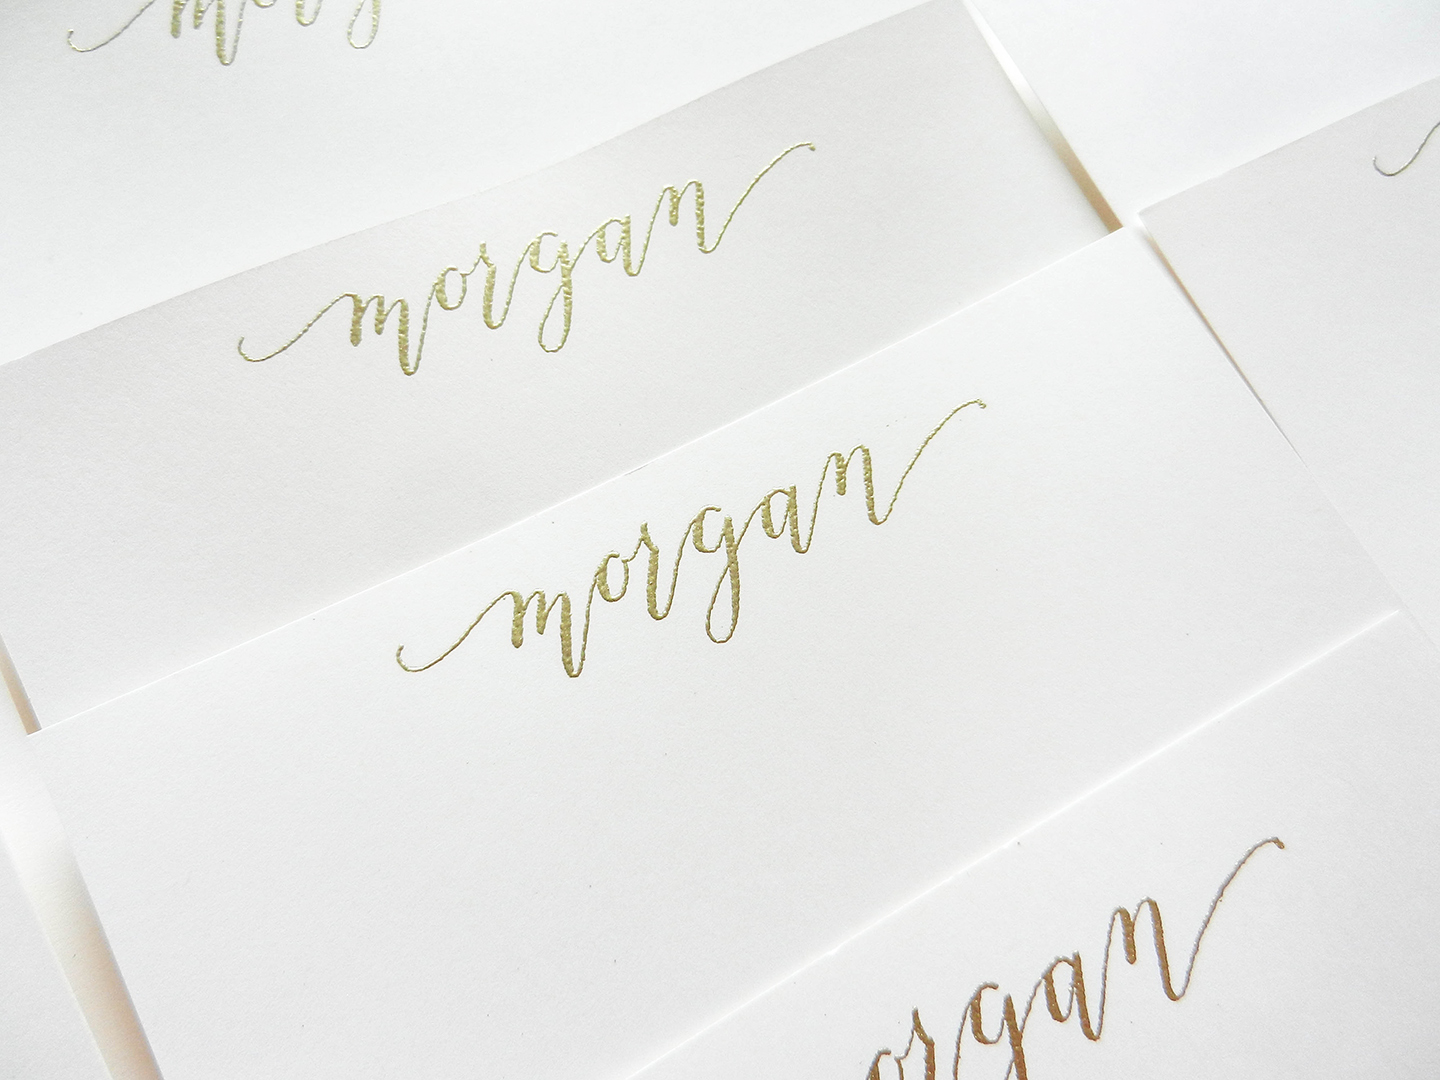 Handmade Stationery Tutorial | The Postman's Knock